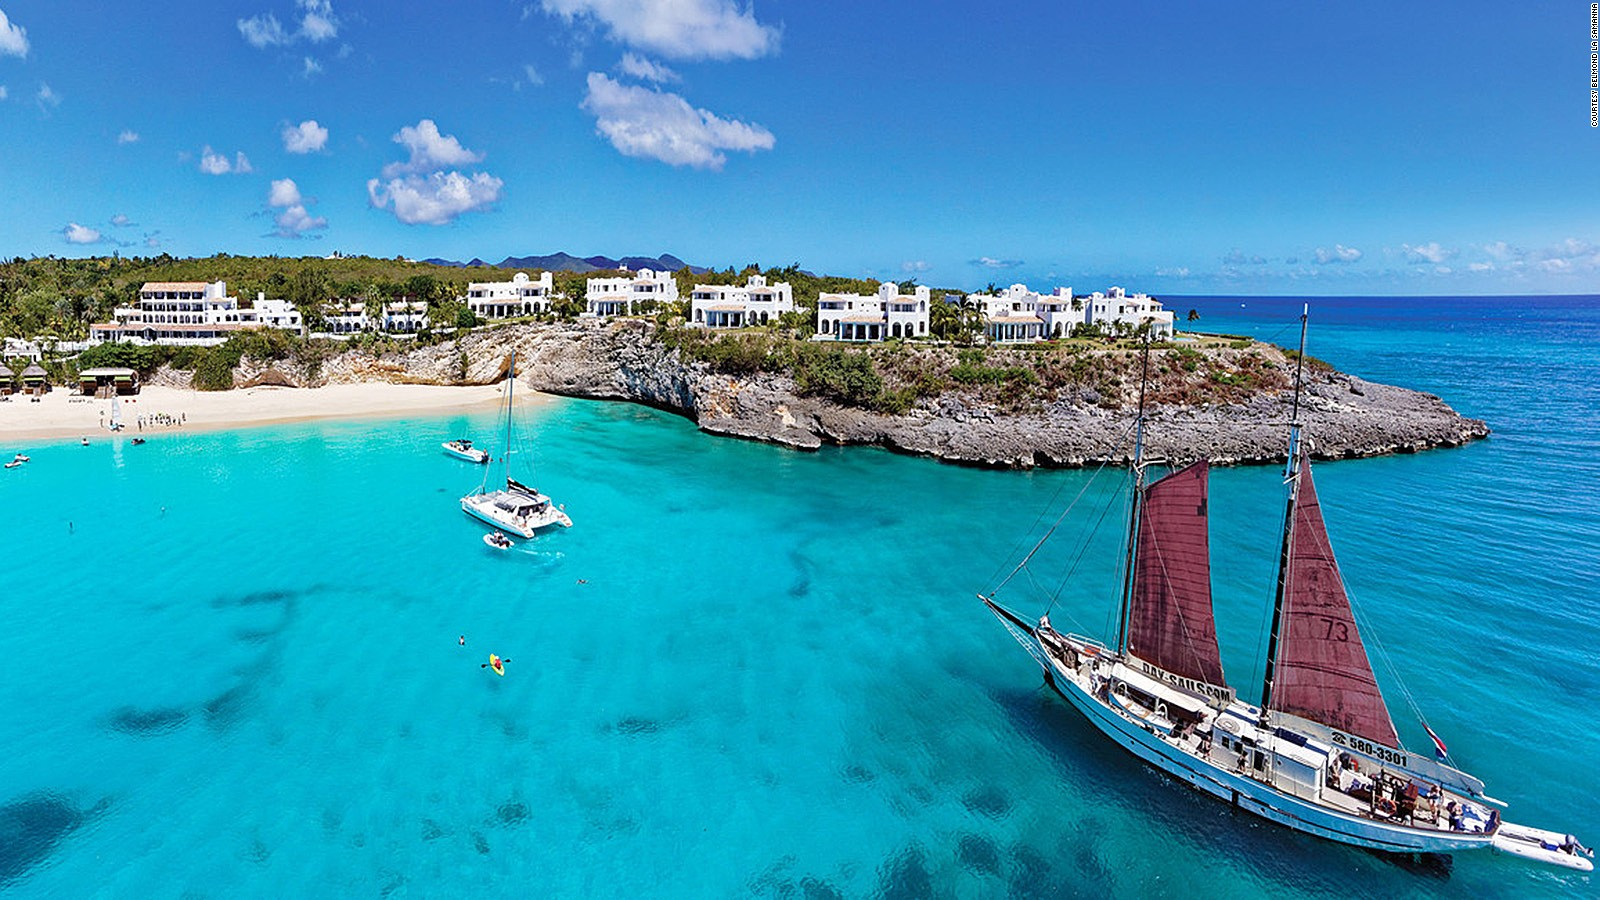 Most Beautiful Island Hotels CNN Travel - Island hopping in the caribbean 10 pristine getaways